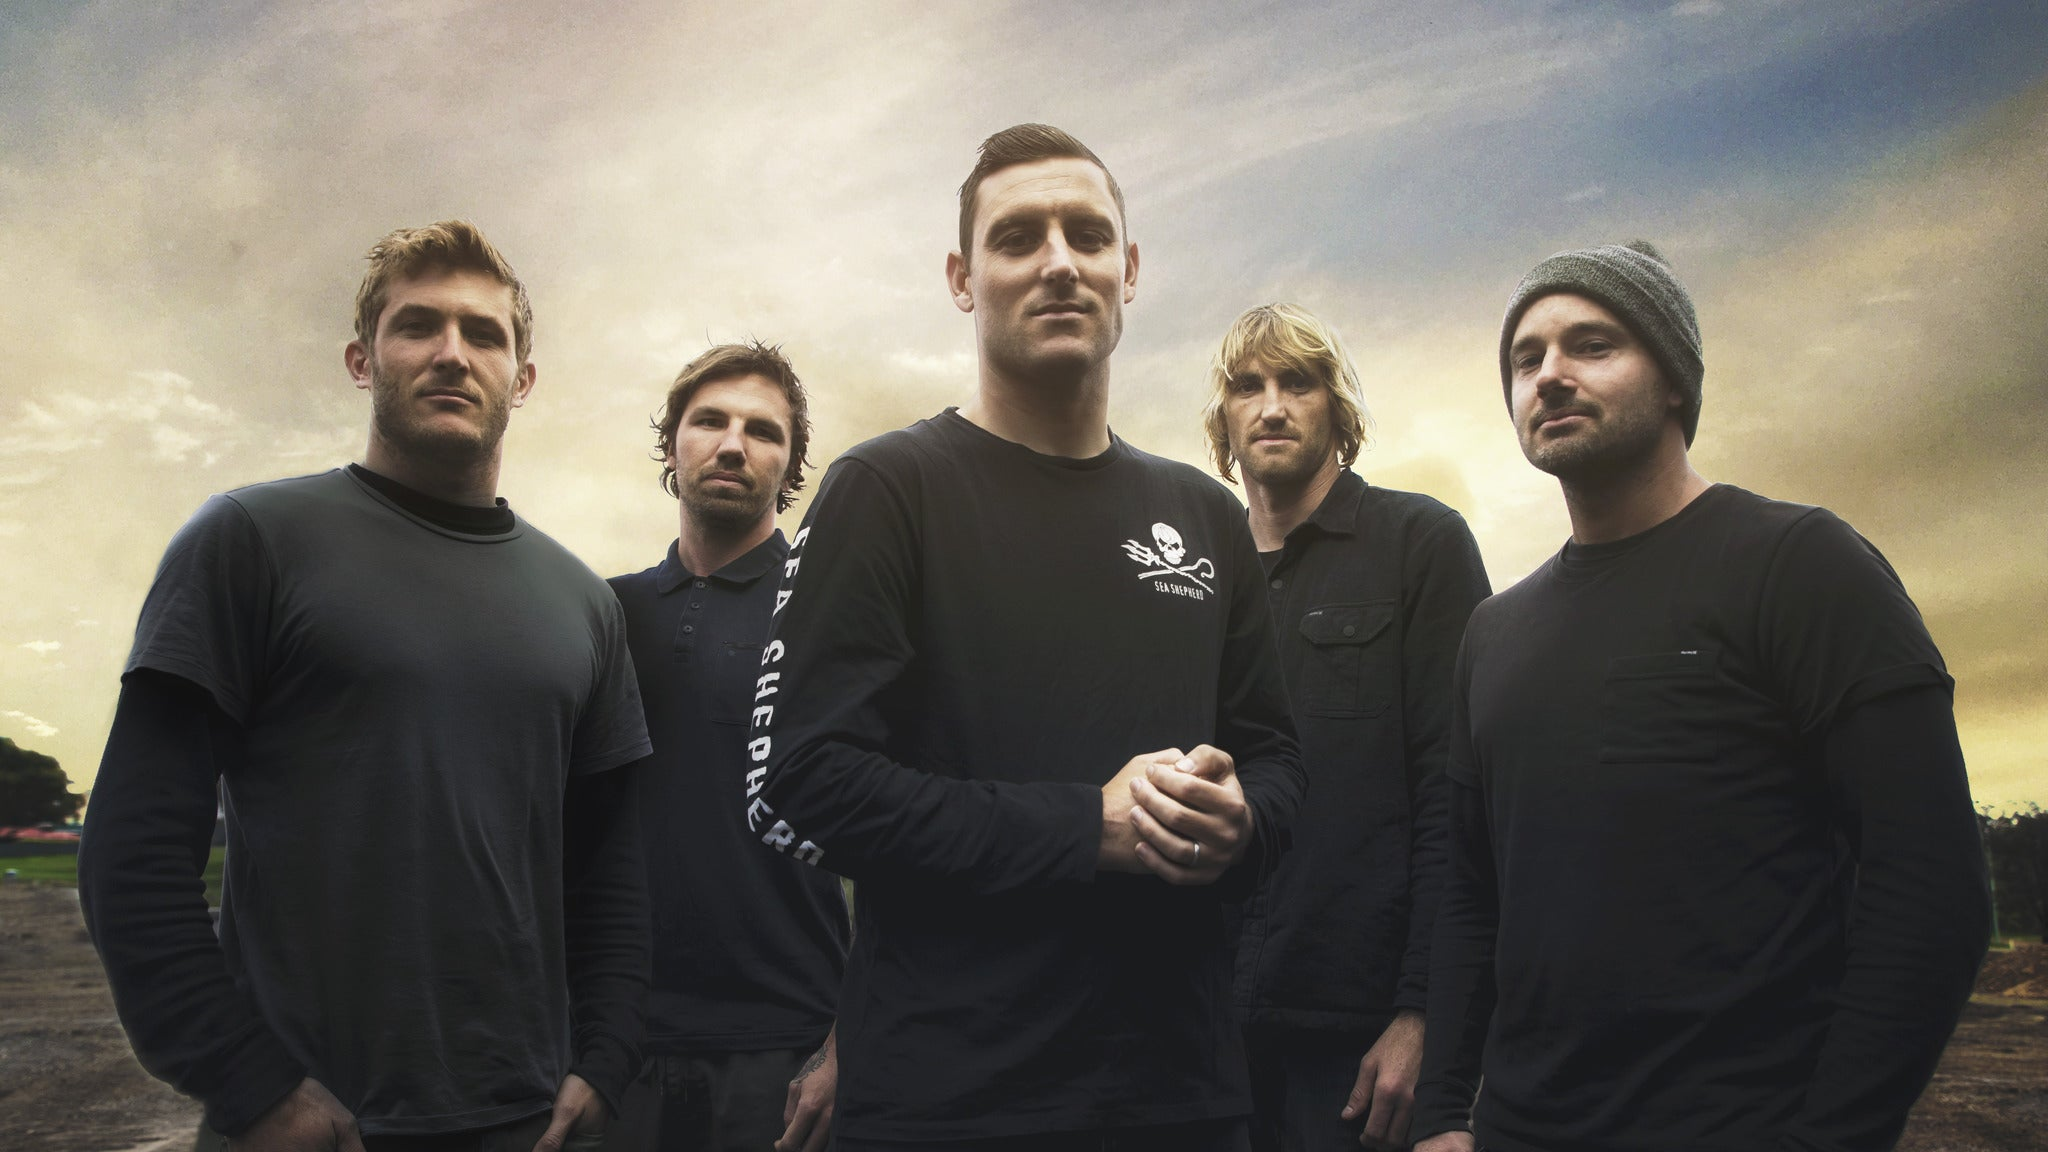 Parkway Drive - US Spring Tour 2018 at The Intersection